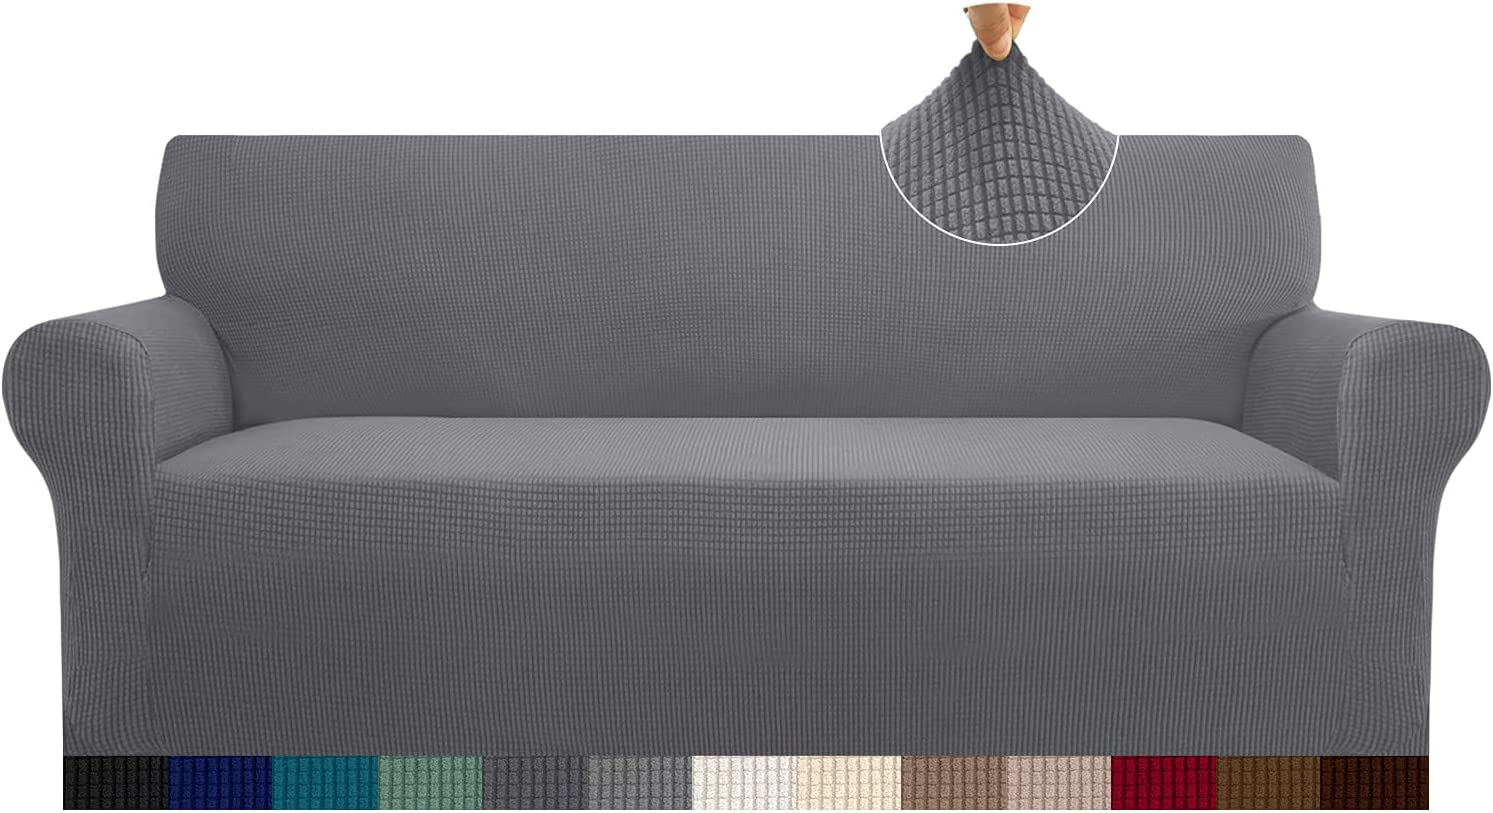 Cherrypark High Stretch Sofa Cover for 3 Cushion Couch 1 Piece Thickened Couch Cover for Dogs Anti-Slip Furniture Protector with Elastic Band(Large,Light Gray)